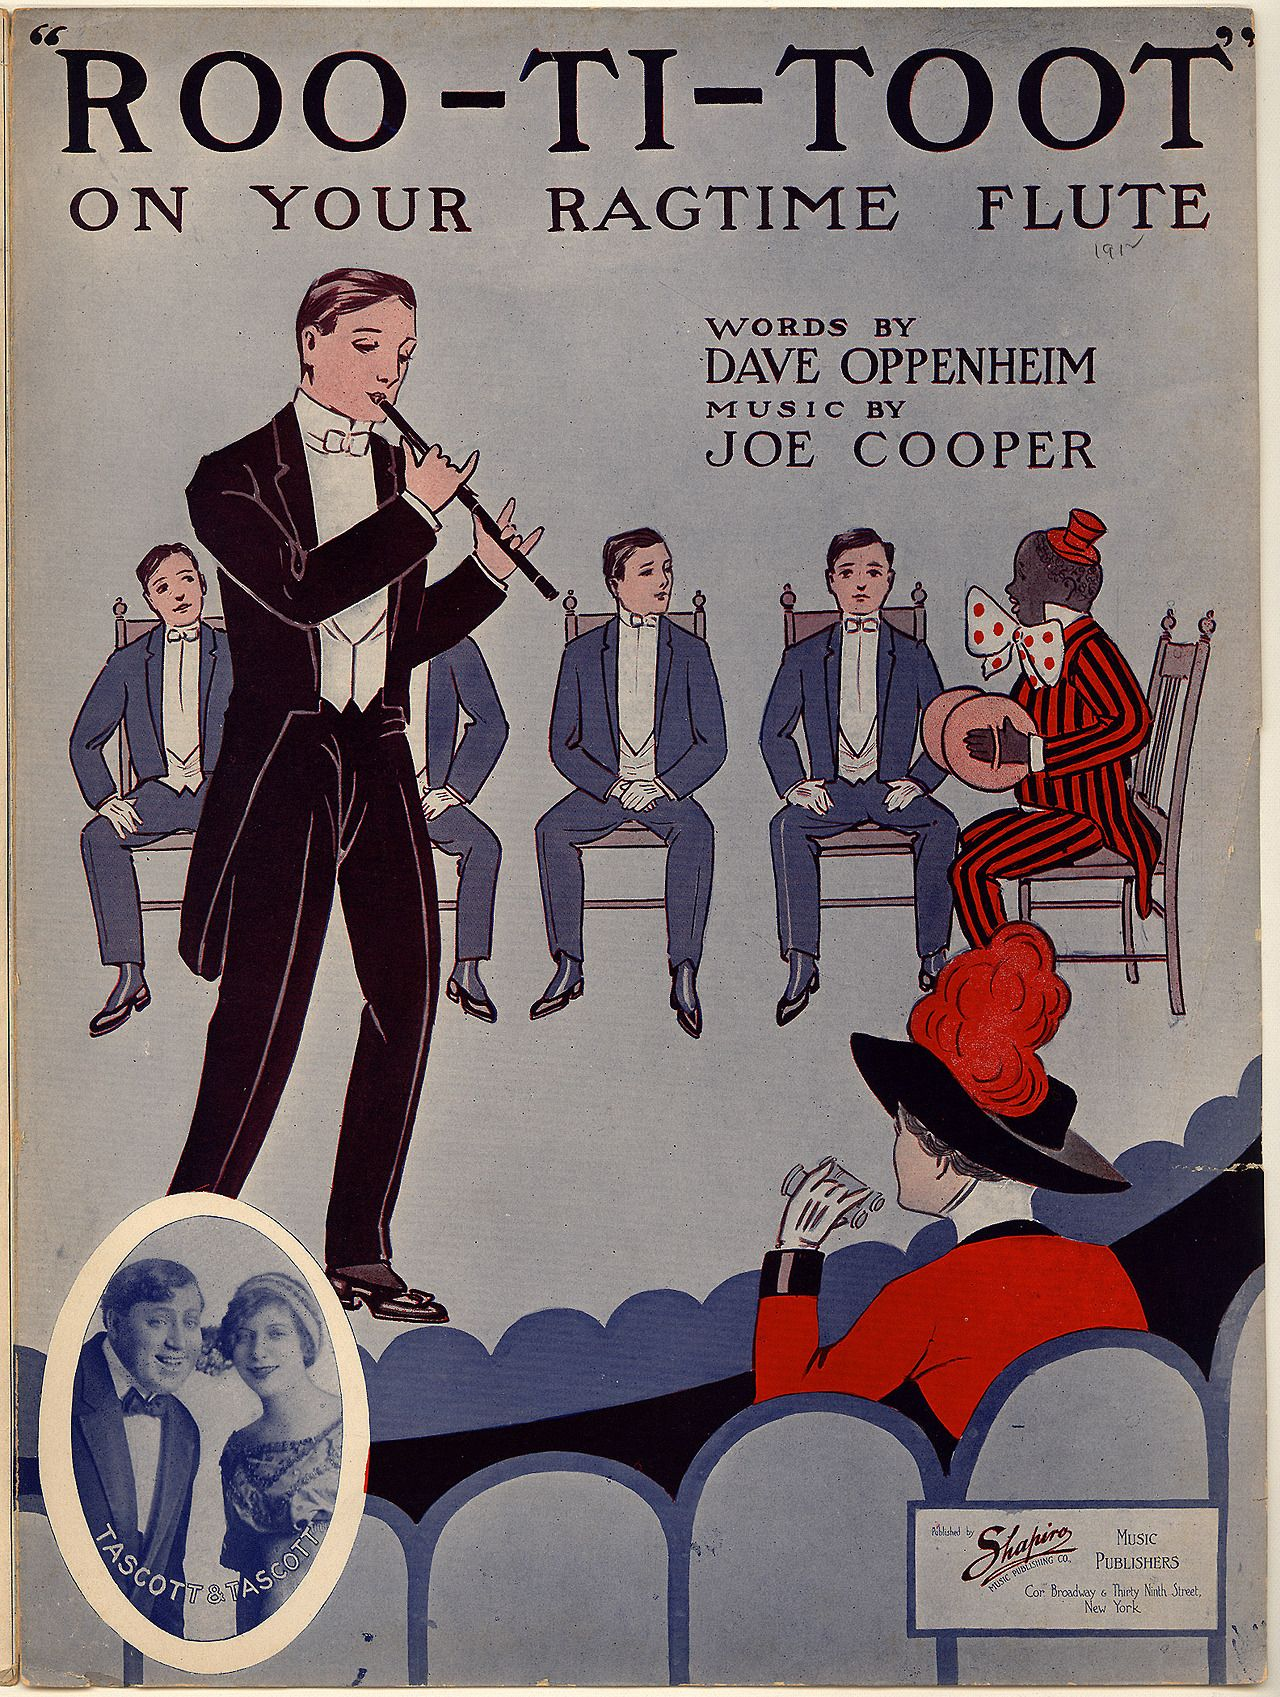 Roo-Ti-Toot on Your Ragtime Flute (1912). Music by JoeCooper.Lyricist: Dave Oppenheim.Performers: Tascott & Tascott.New York, Shapiro, 1912.Rare Book, Manuscript, and Special Collections Library, Duke University. First line: There was a minstrel man down in Alabam'. Chorus: Come on and rootitoot upon your ragtime flute.